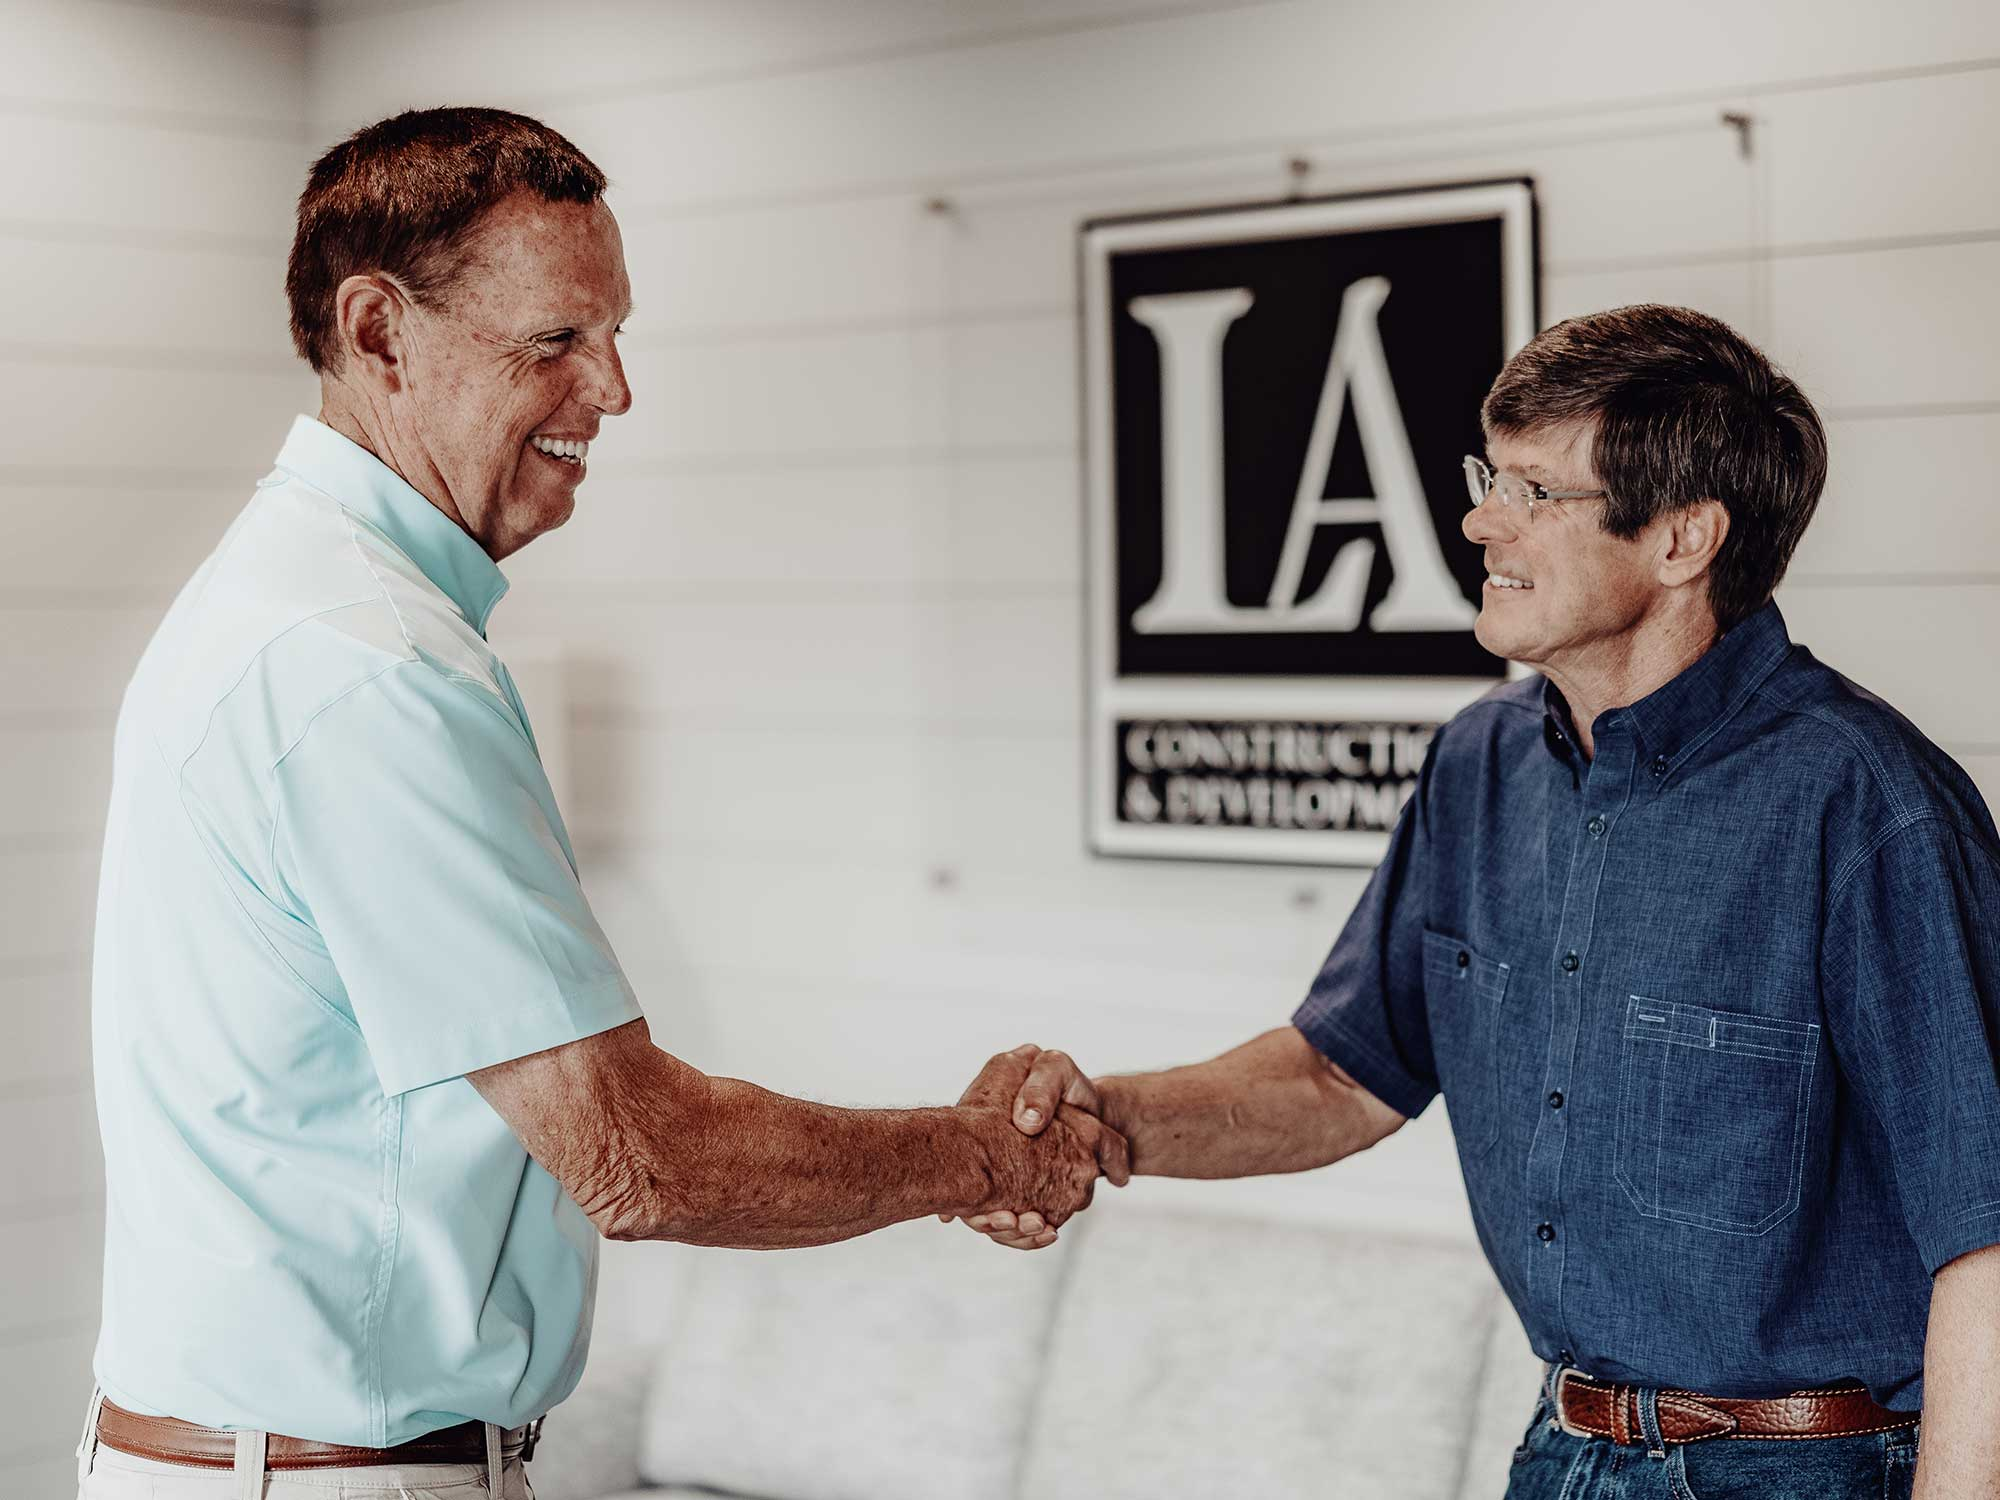 Larry shaking hands with an LA Construction client. As custom home builders, we care about the relationships we build with our customers.